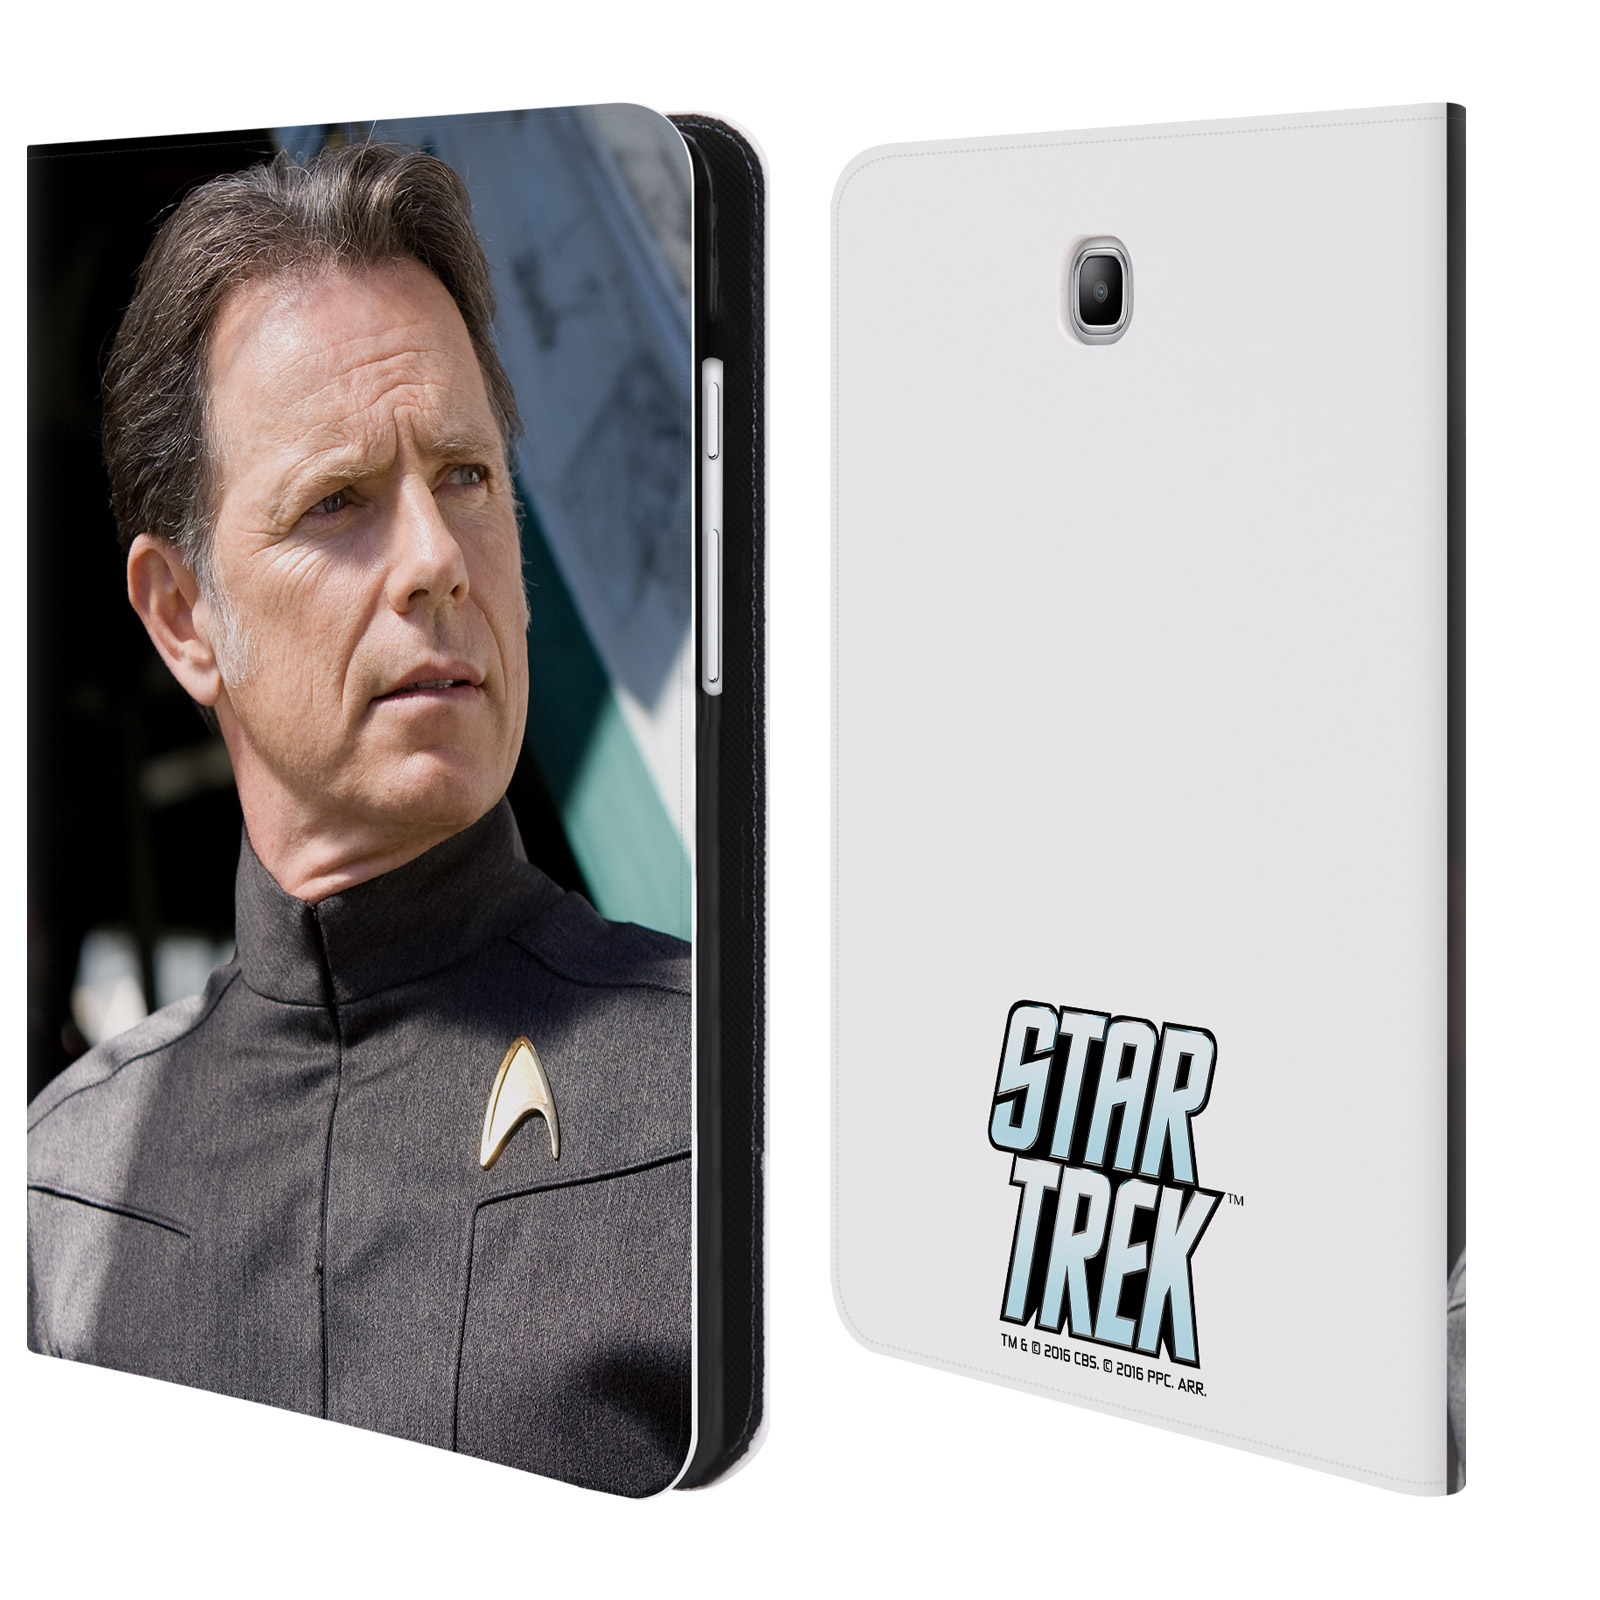 OFFICIAL STAR TREK MOVIE STILLS REBOOT XI LEATHER BOOK WALLET CASE COVER FOR SAMSUNG GALAXY TABLETS